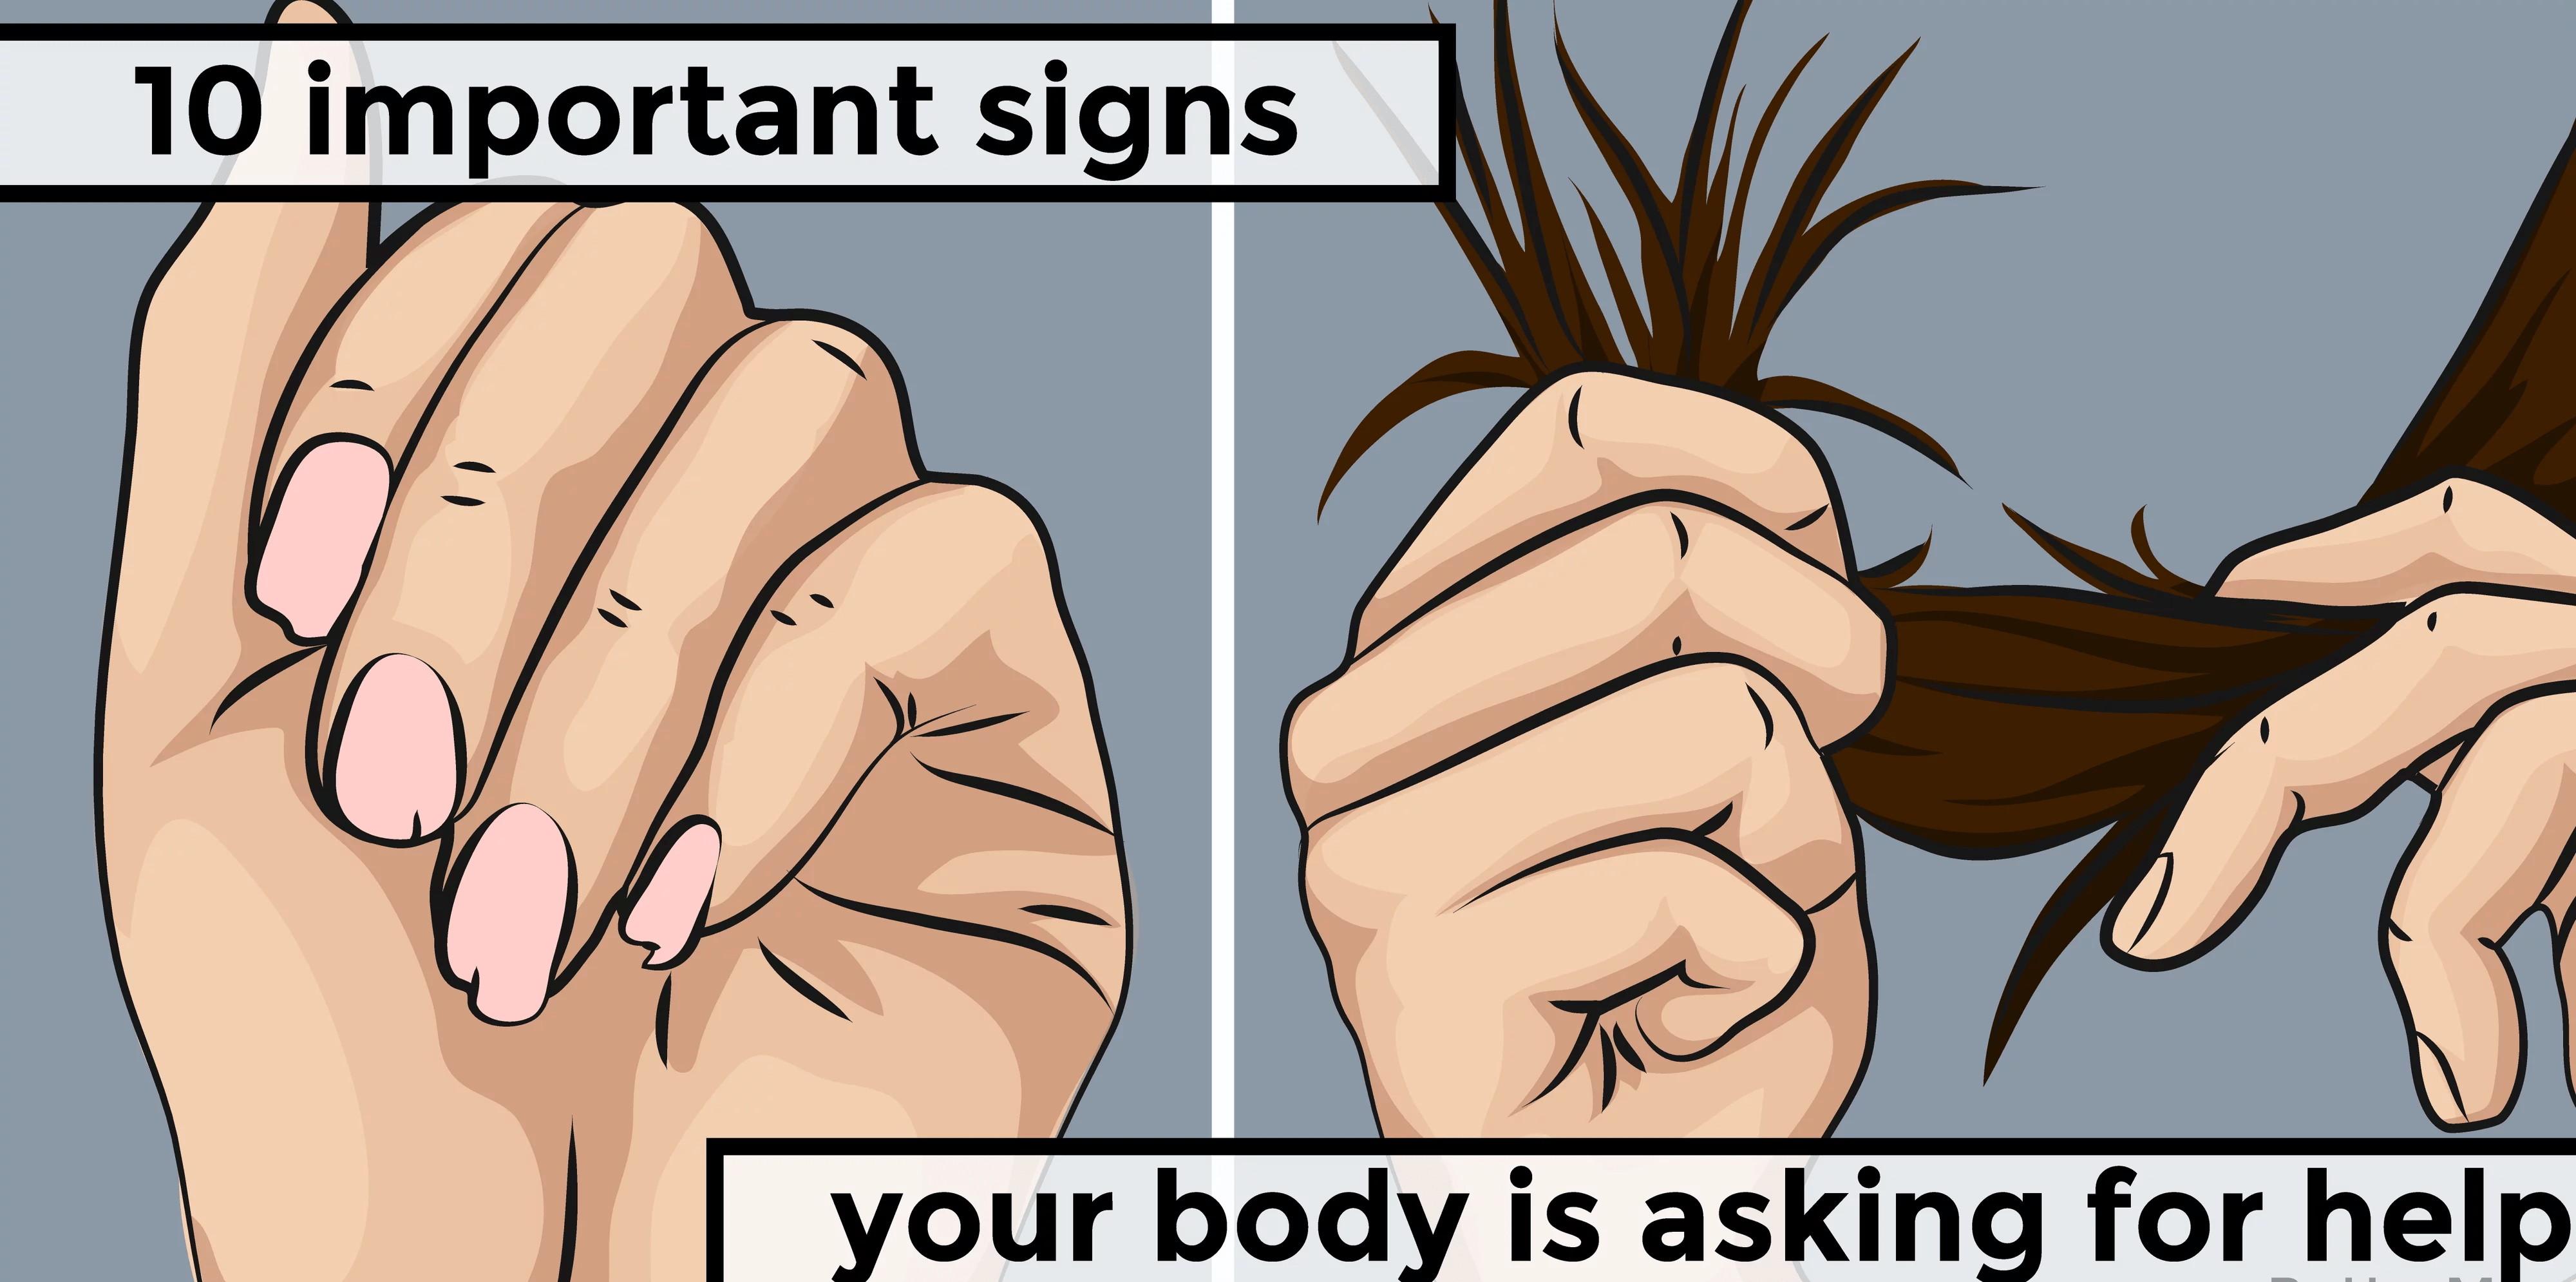 Your body is asking you for help. Don't ignore it! 1